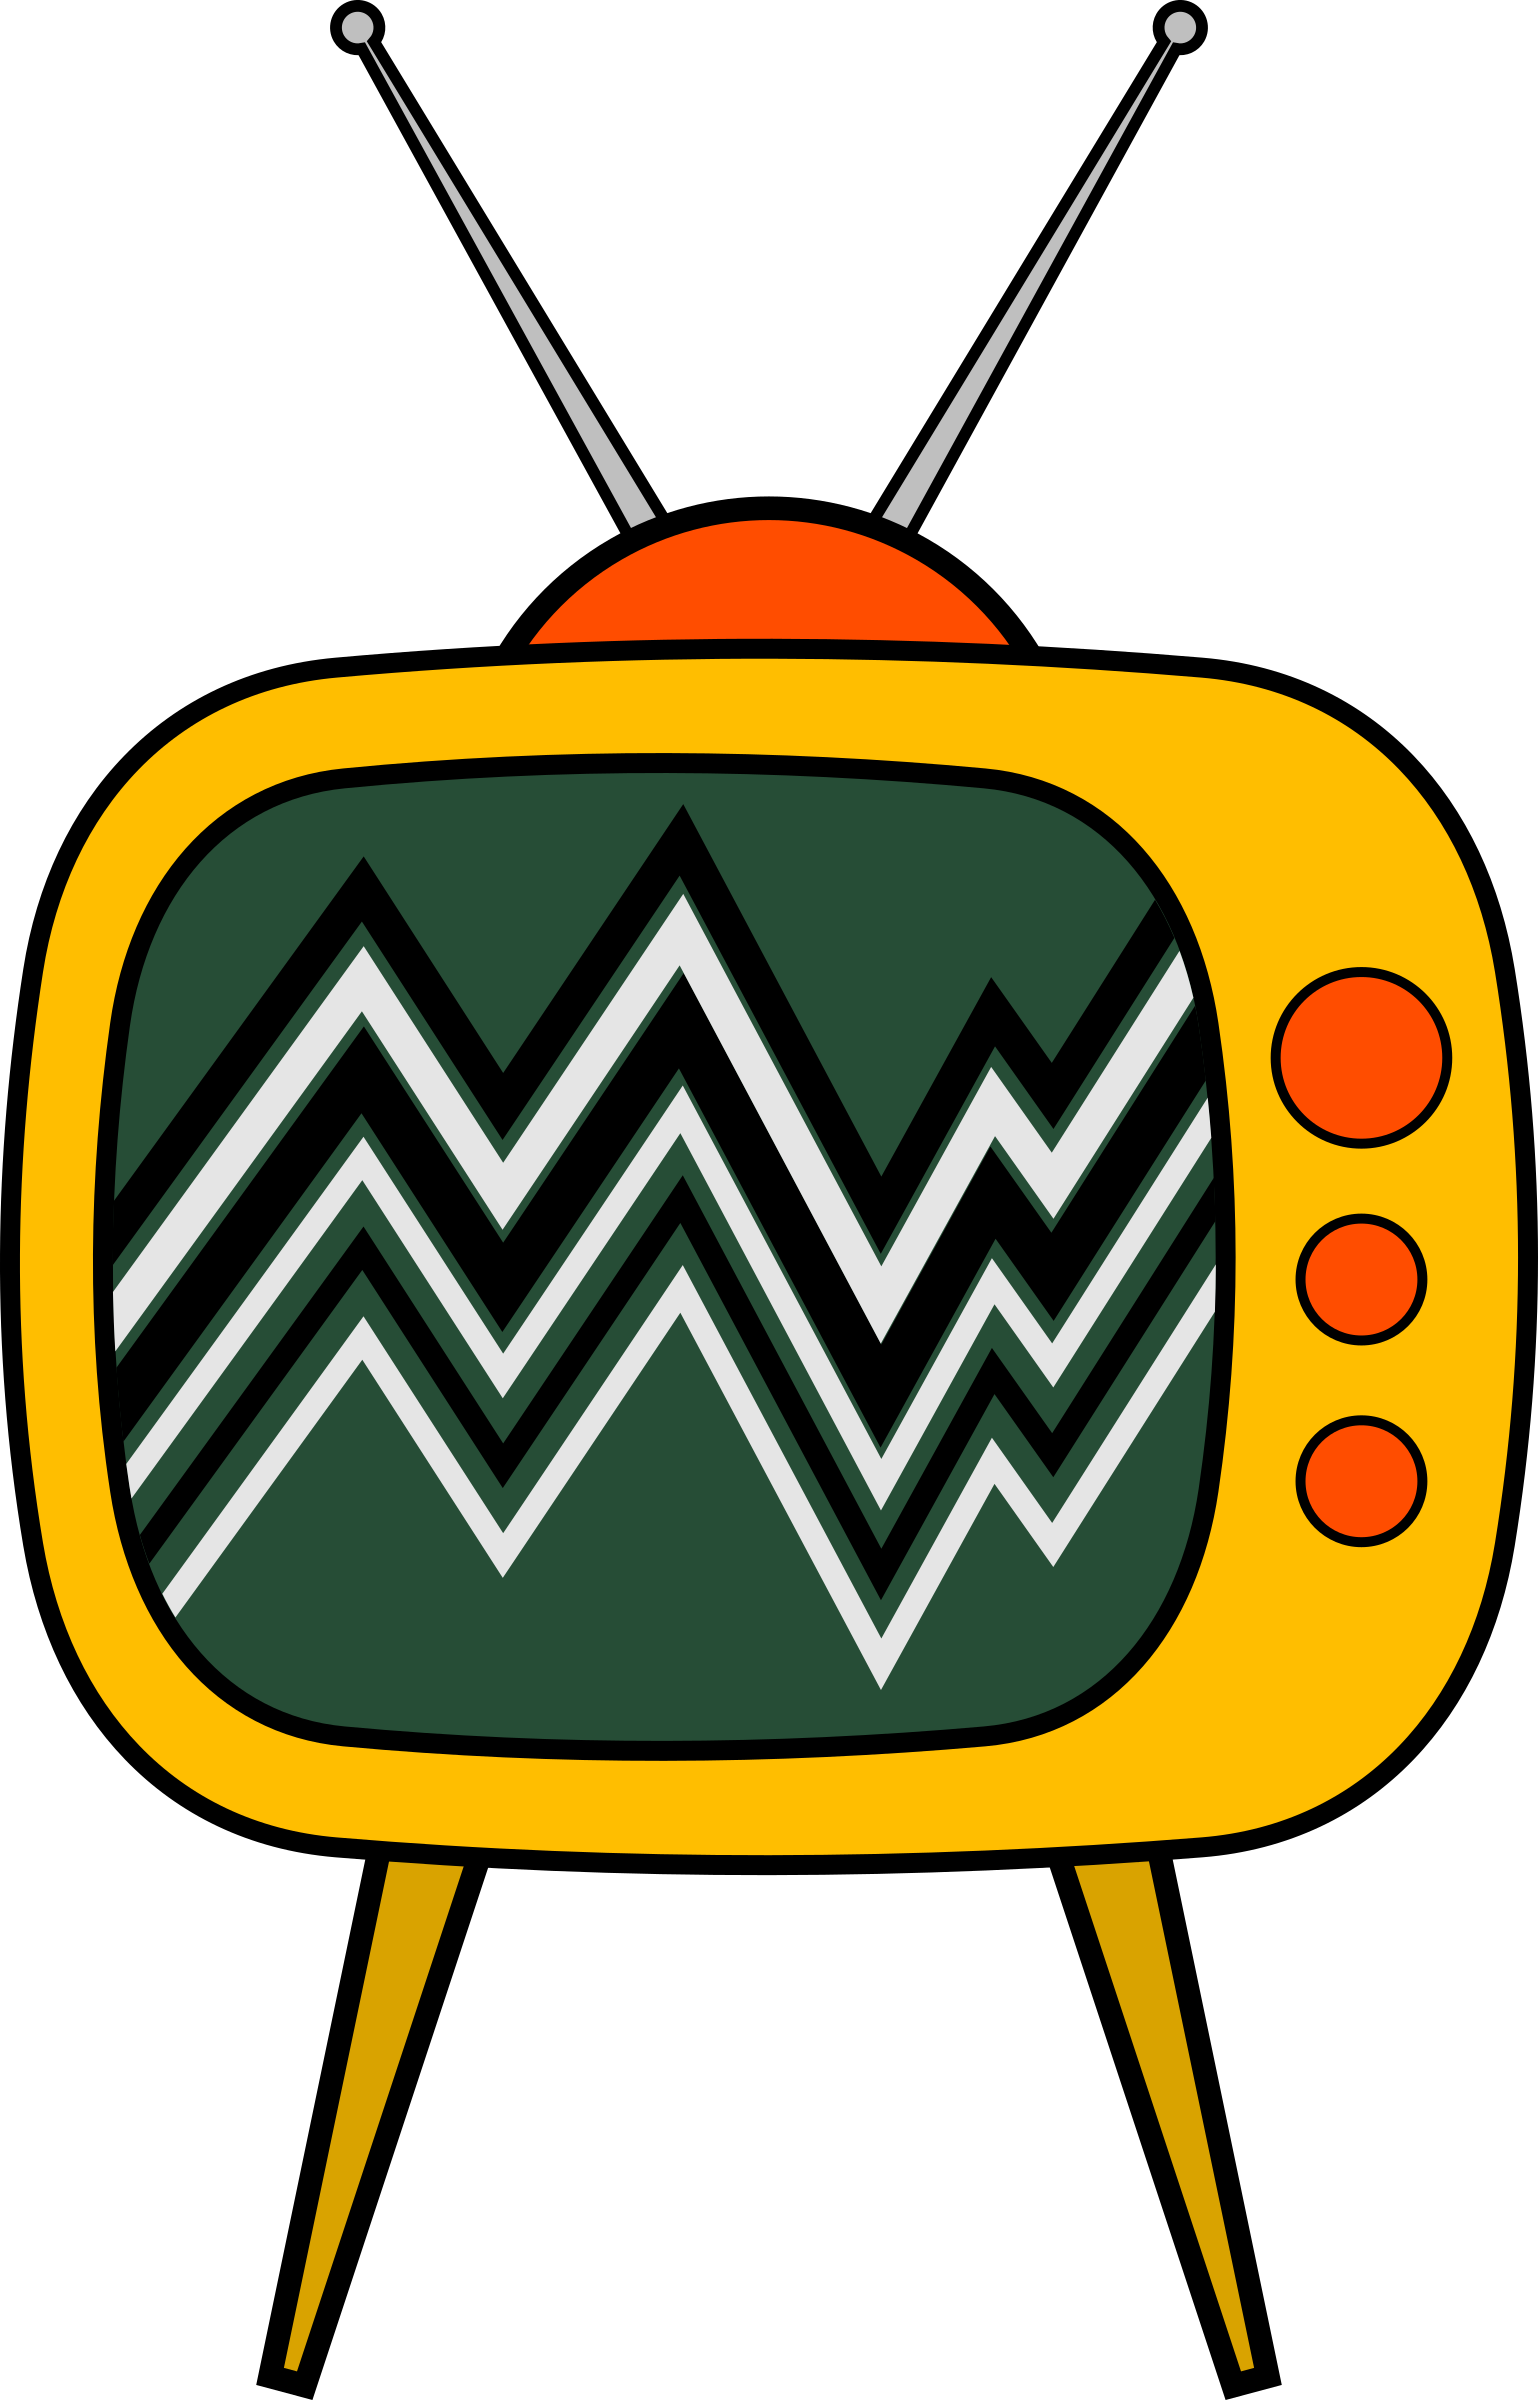 News clipart television news. Old tv cartoon big